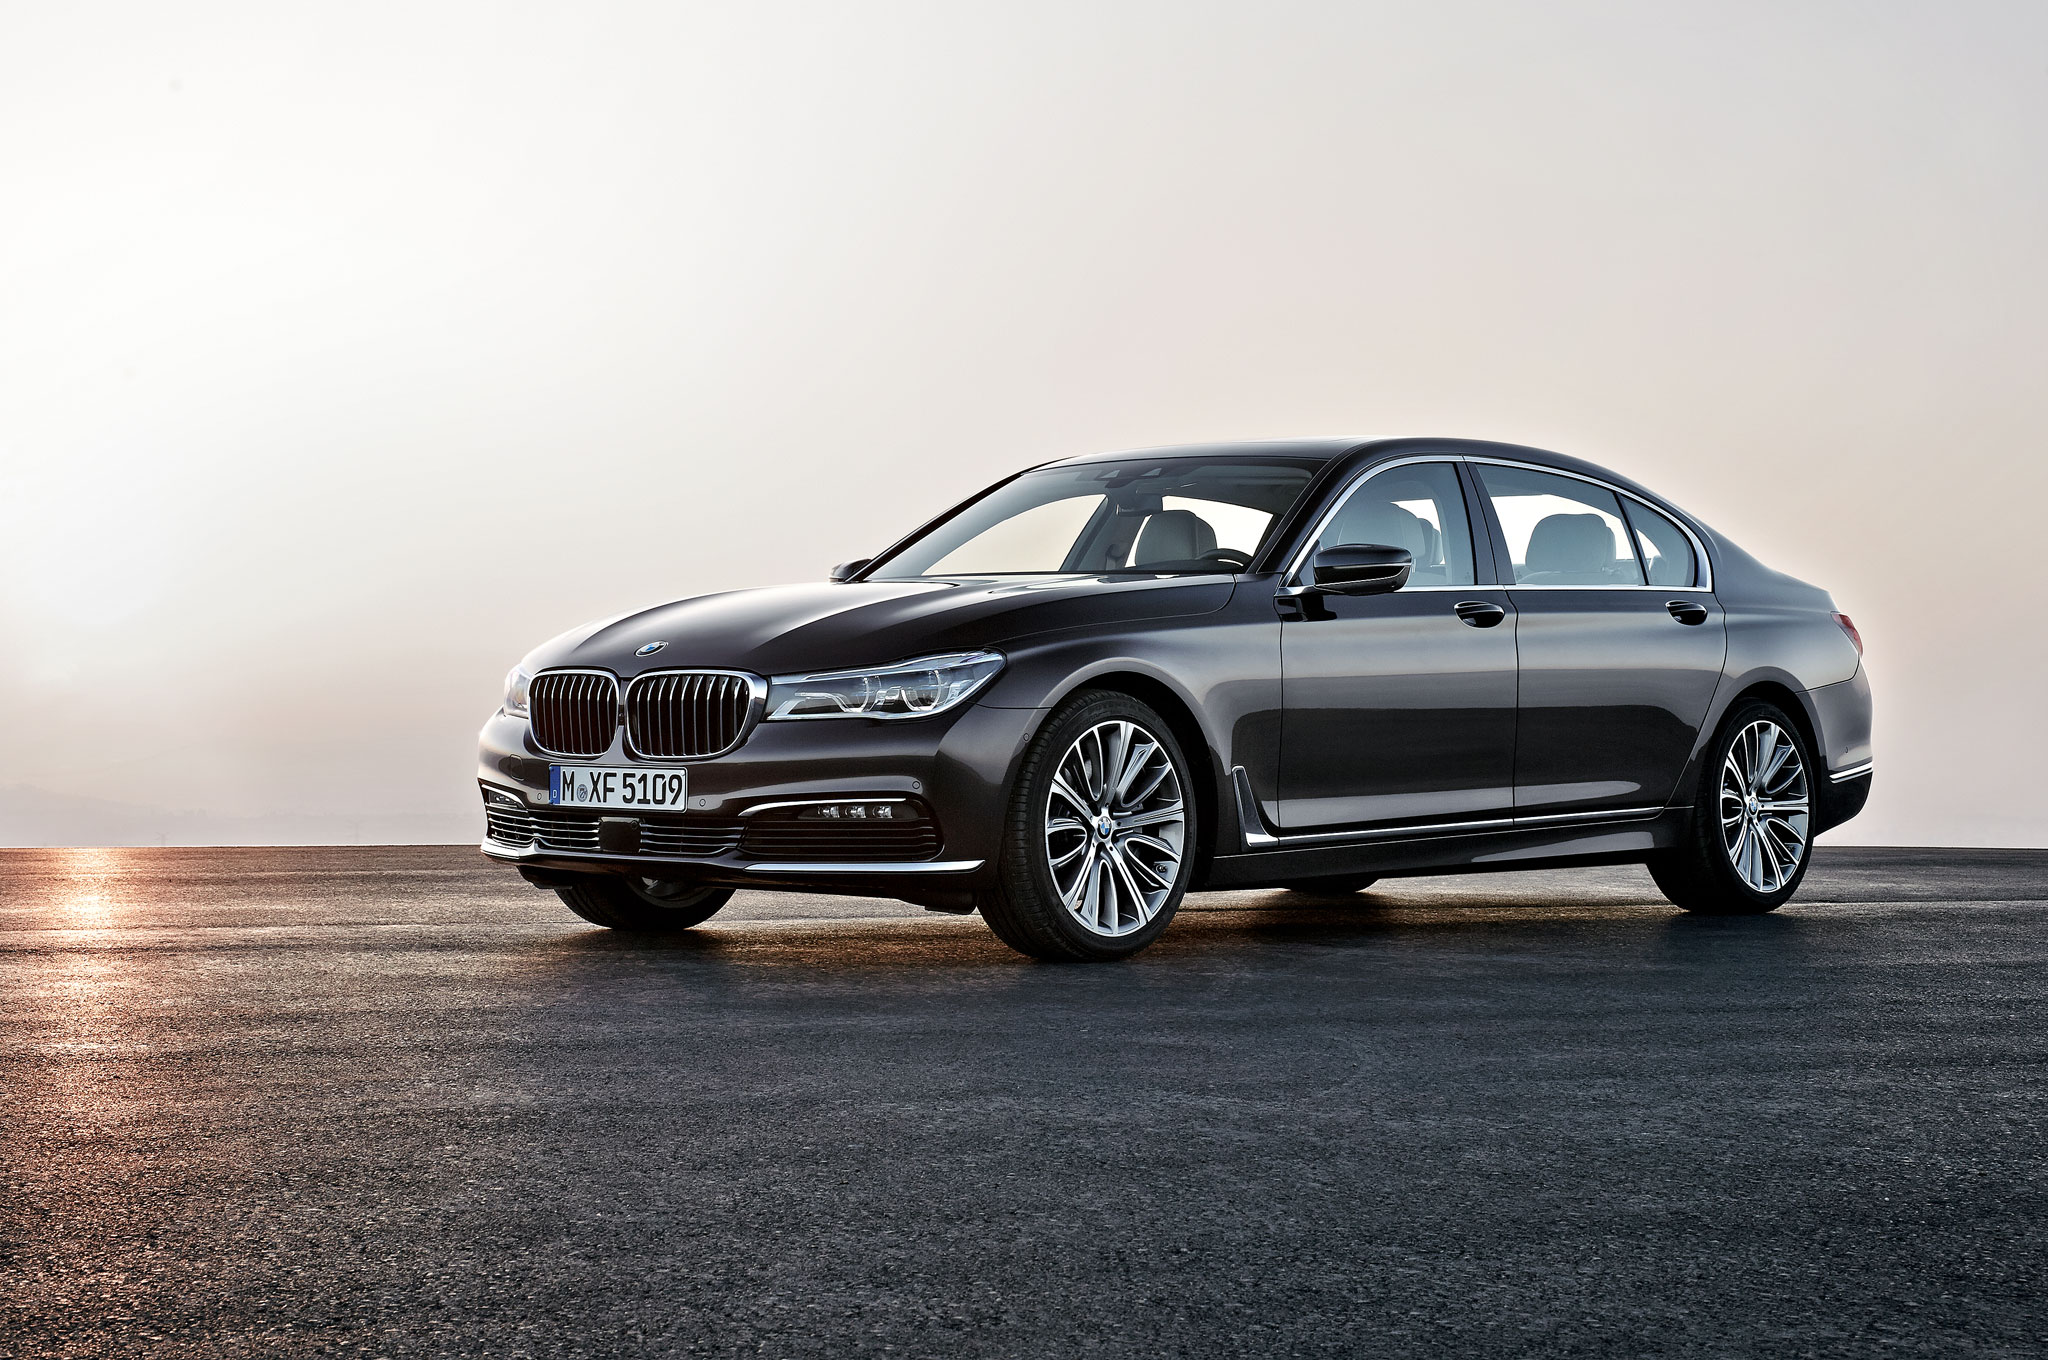 2016 BMW 750Li XDrive Front Three Quarter 01